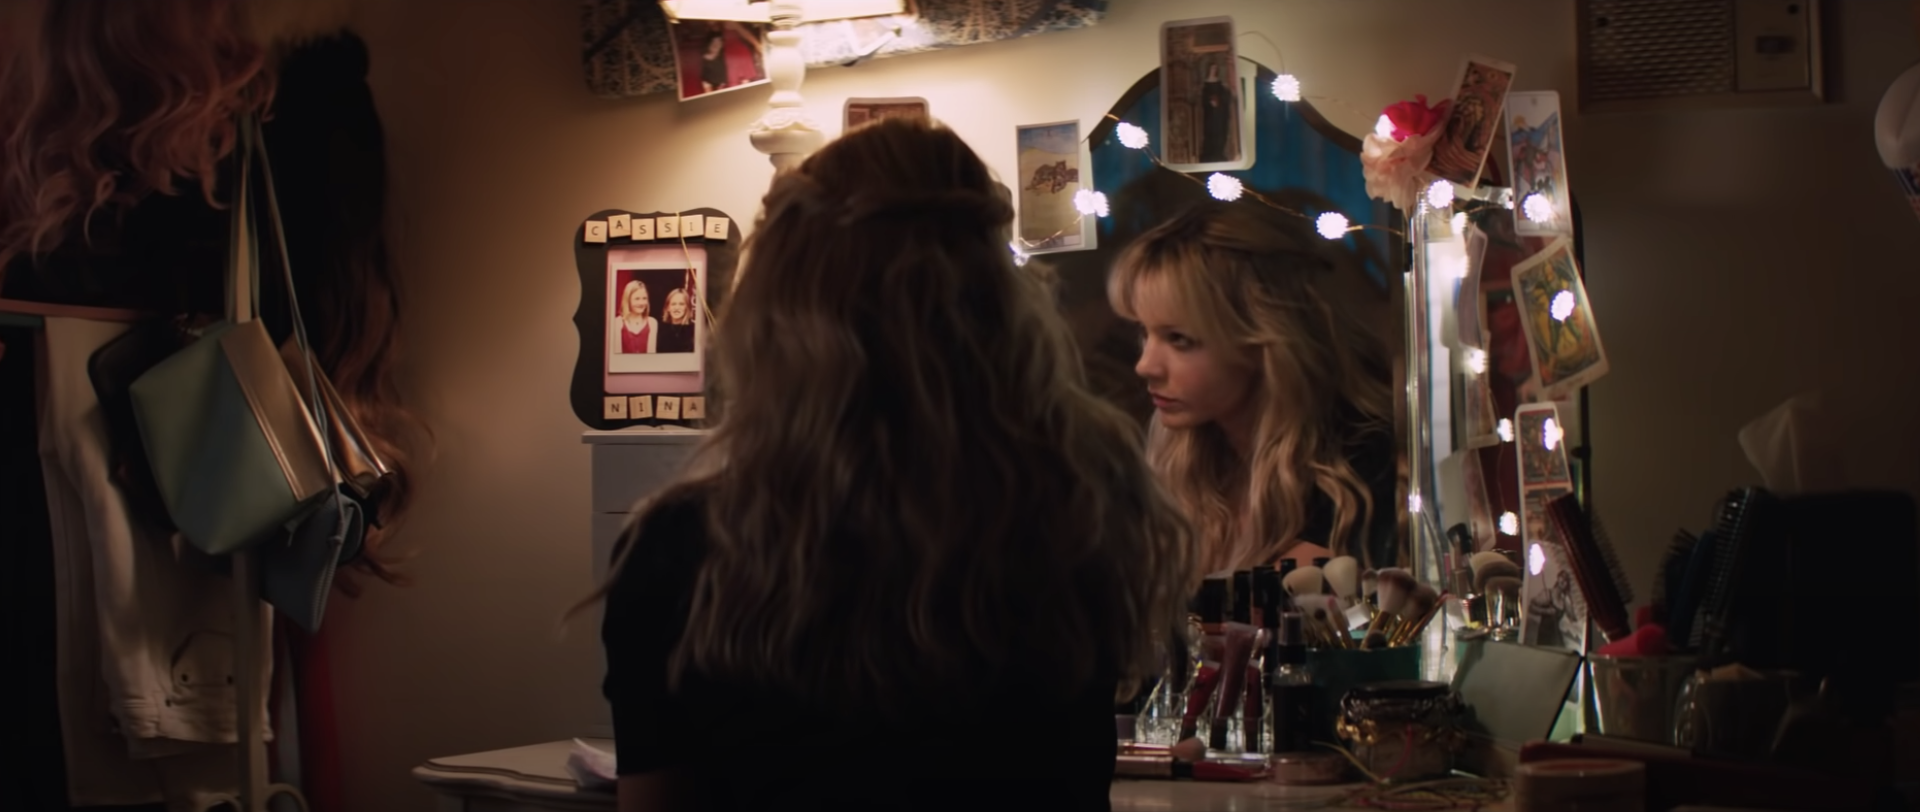 Cassie sitting in front of a mirror decorated with photographs